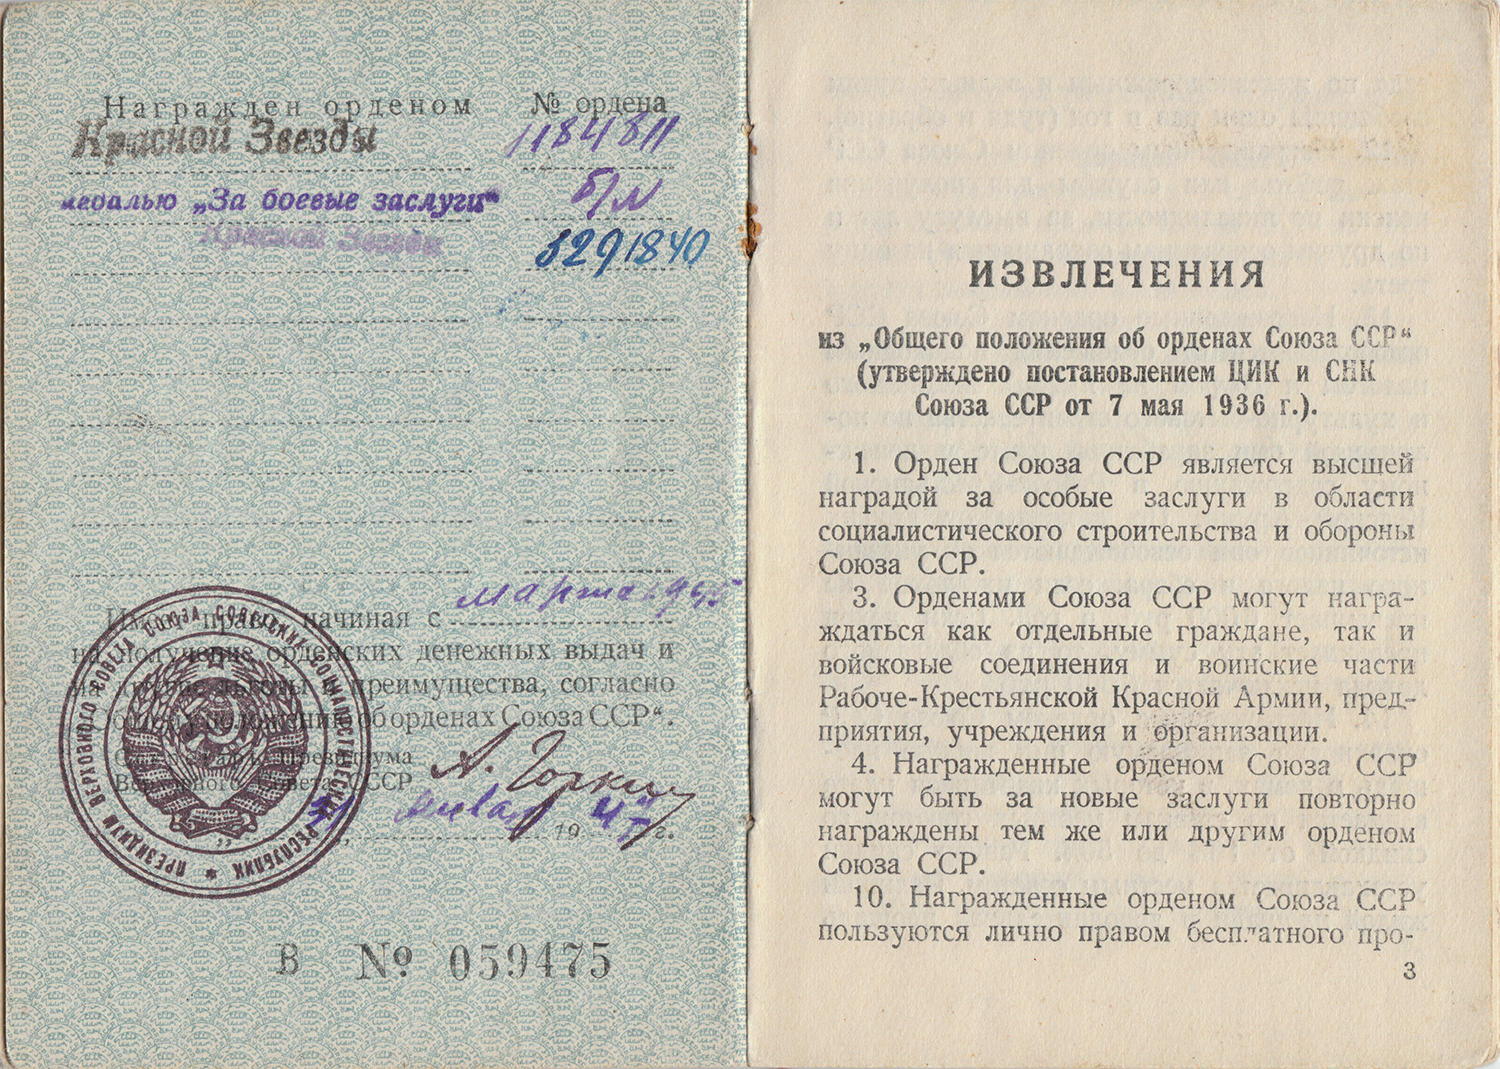 """Award certificate for the medal """"For the Defense of the Caucasus,"""" issued February 4, 1945"""